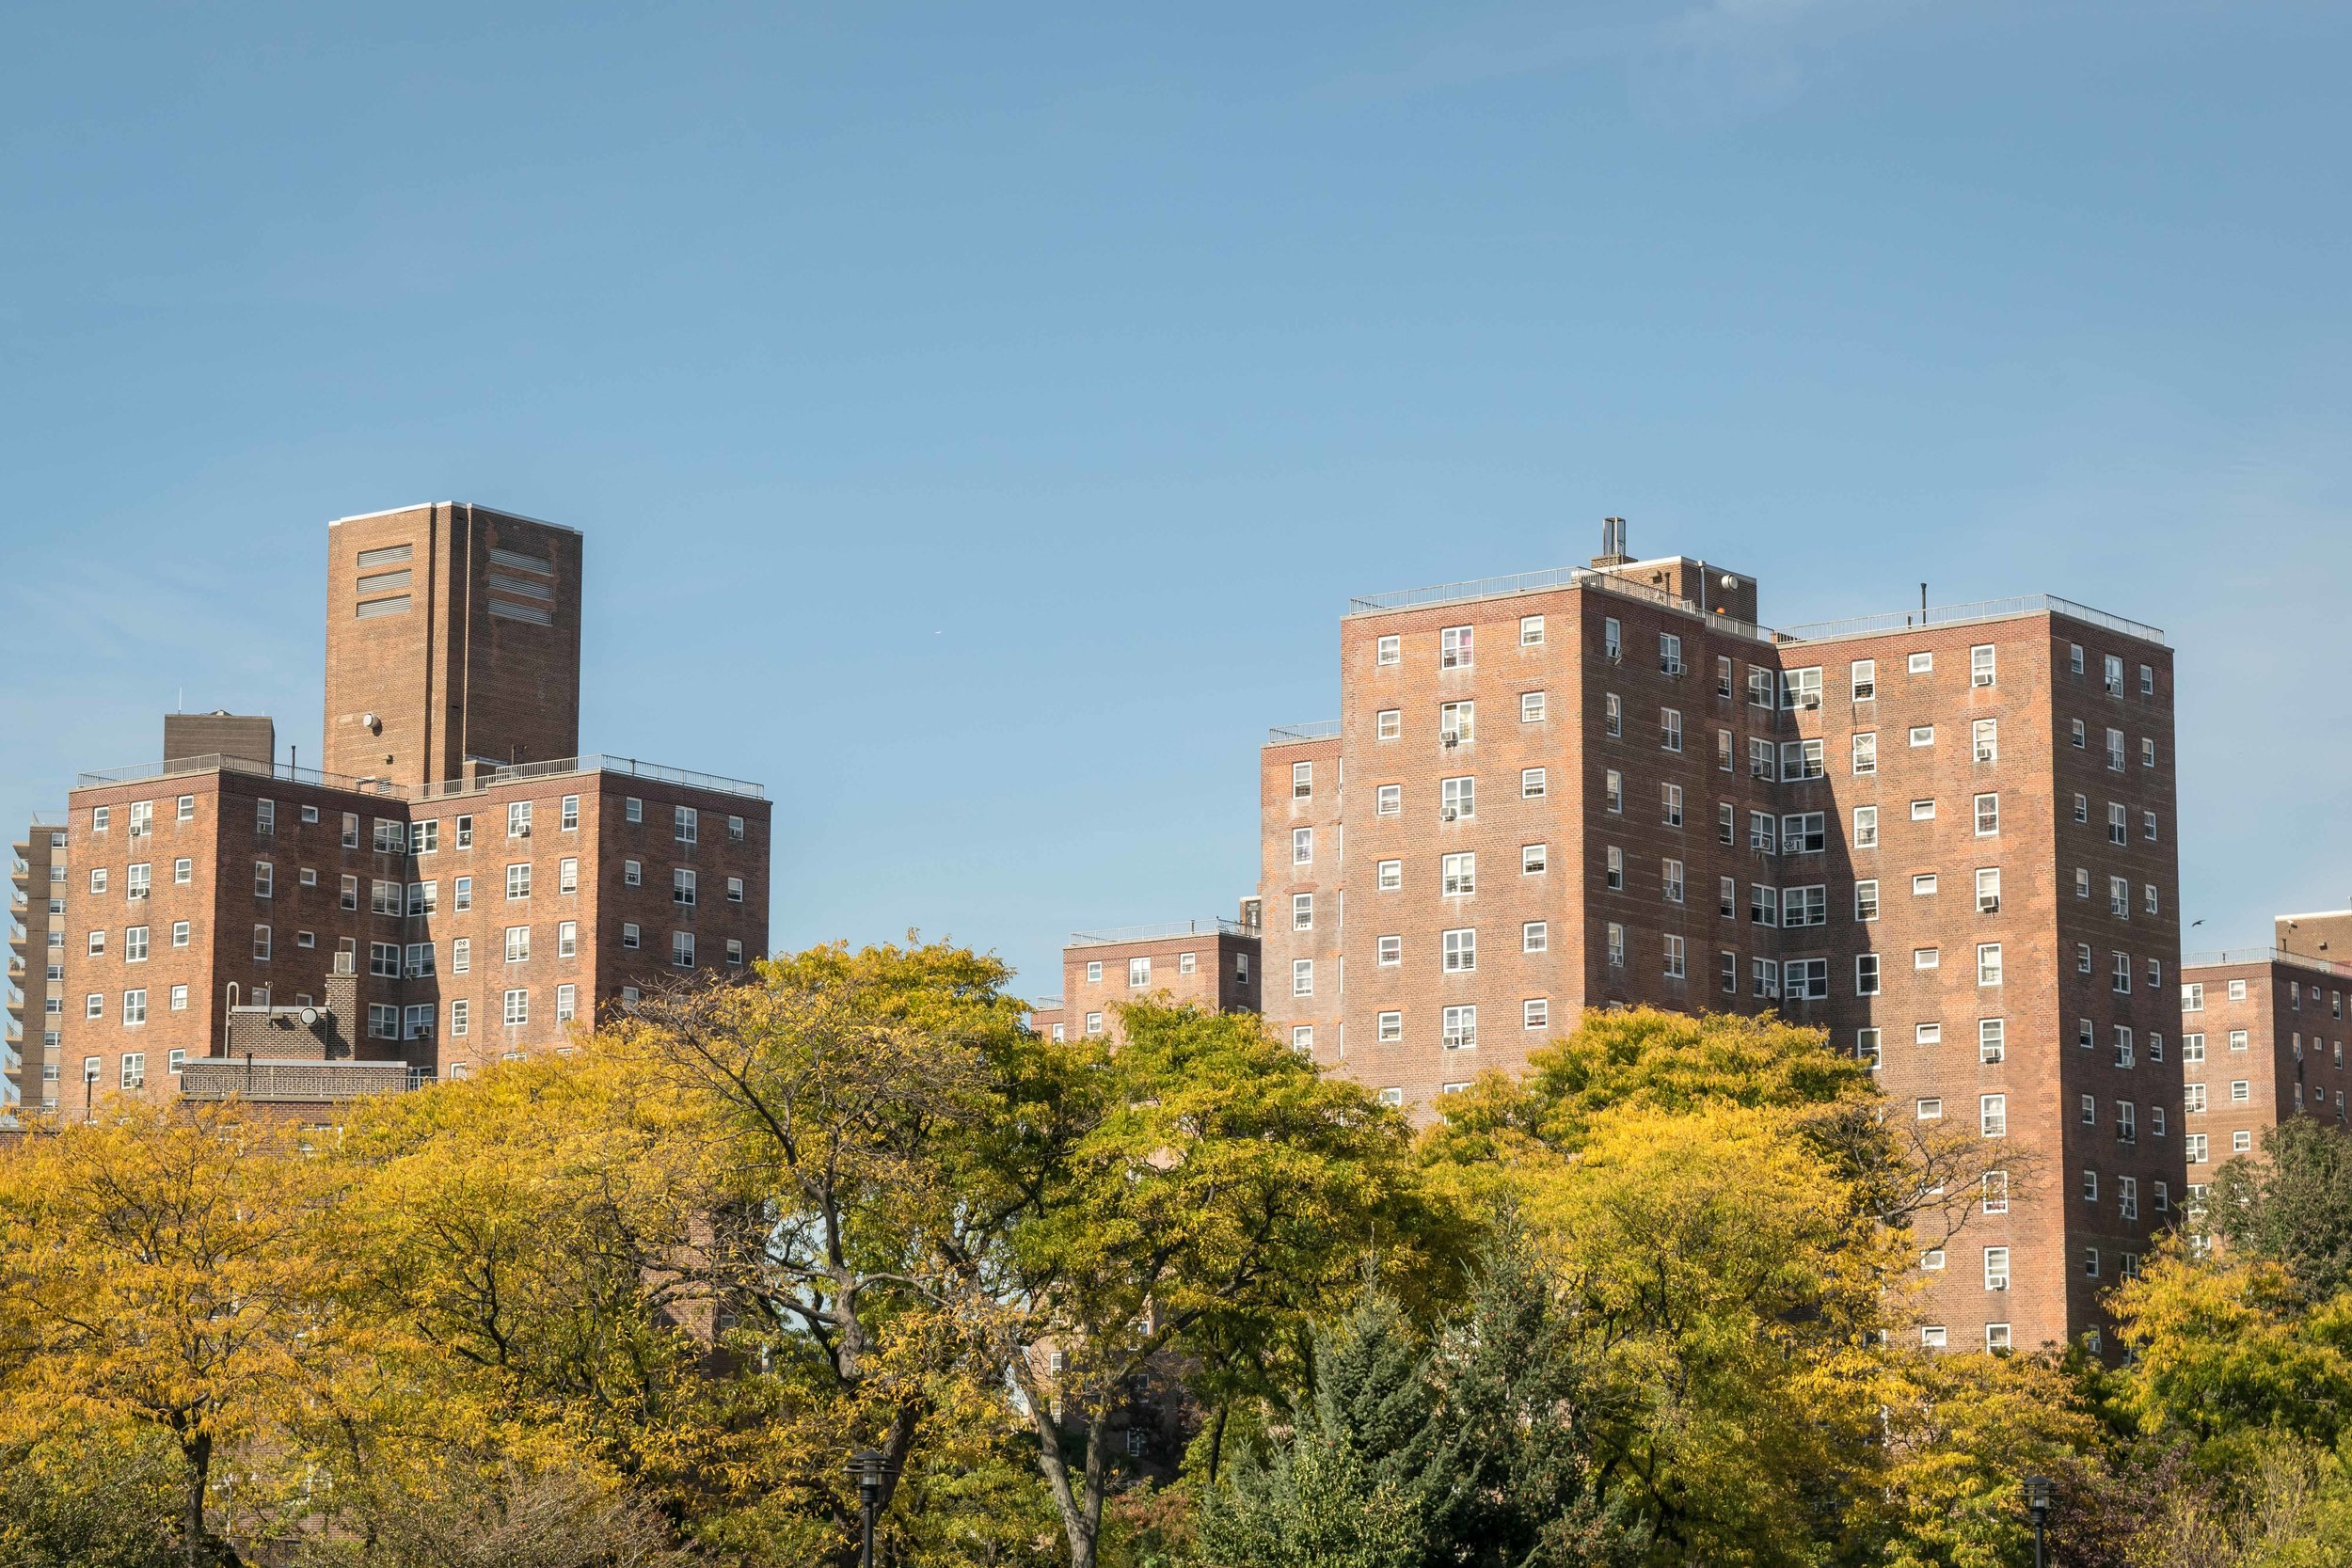 Buildings in Stuyvesant